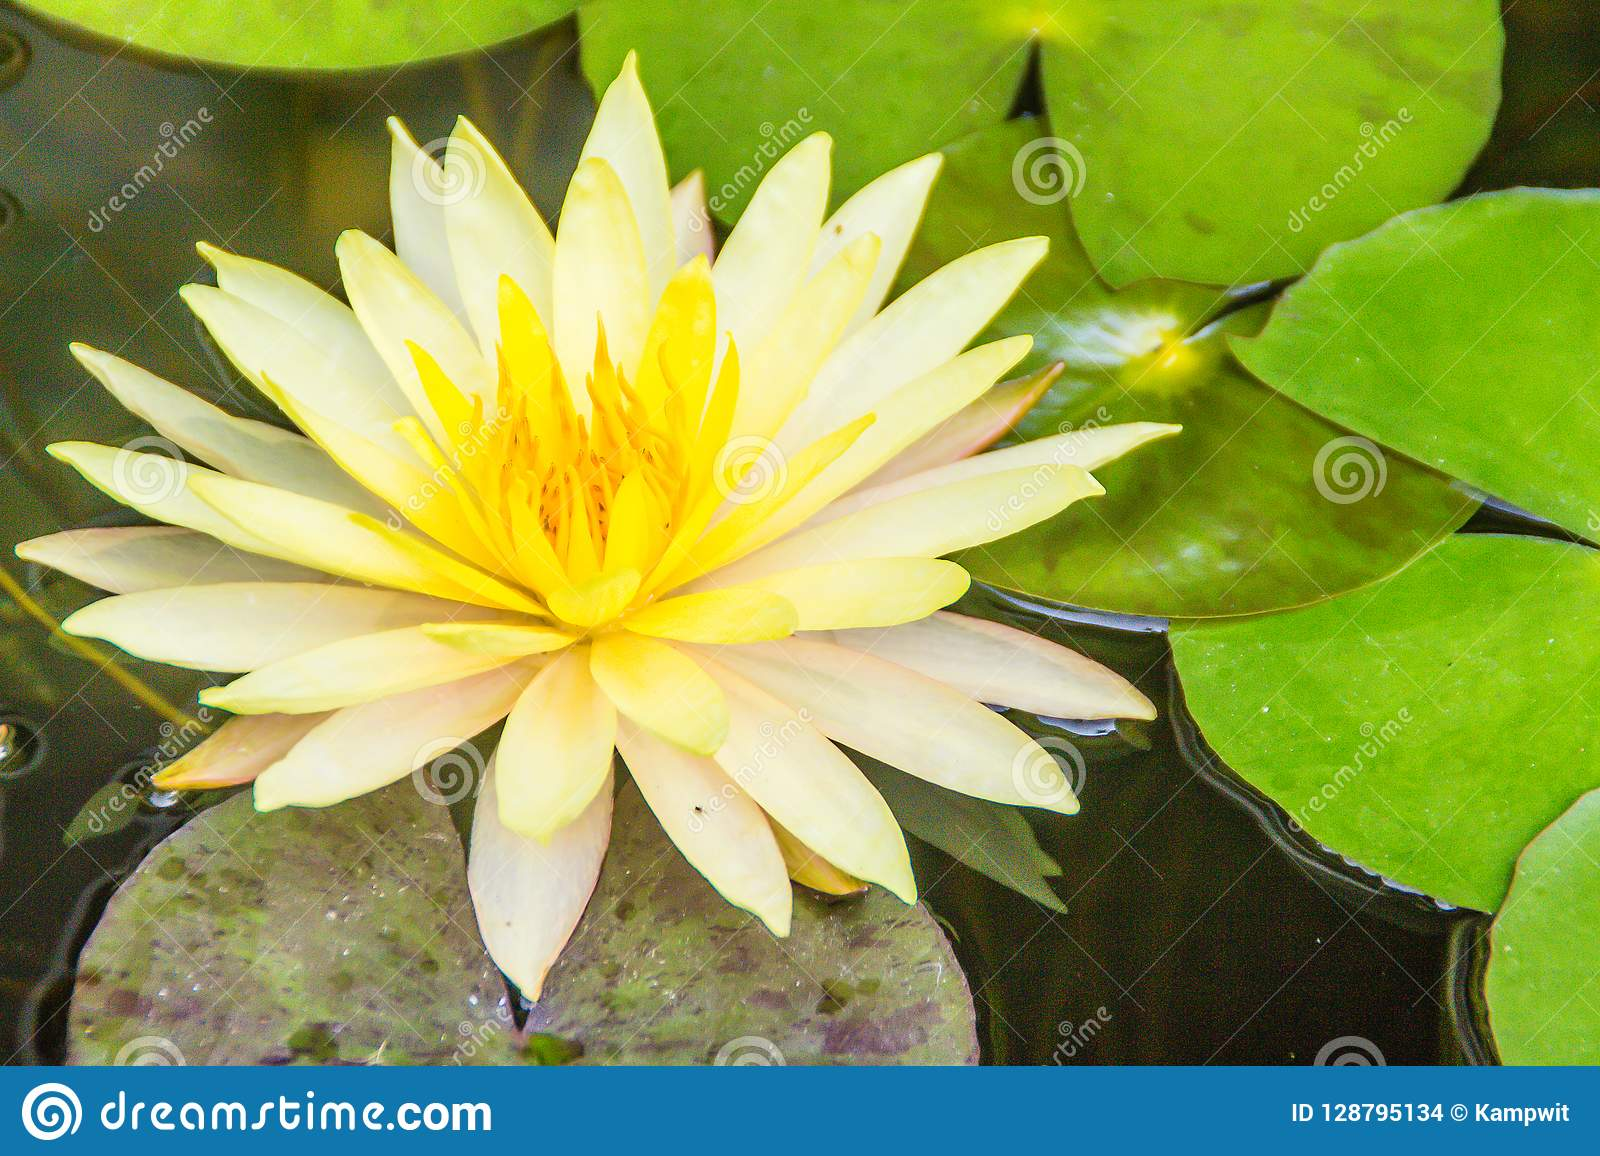 Beautiful Yellow Lotus With Green Leaves In Swamp Pond Peaceful